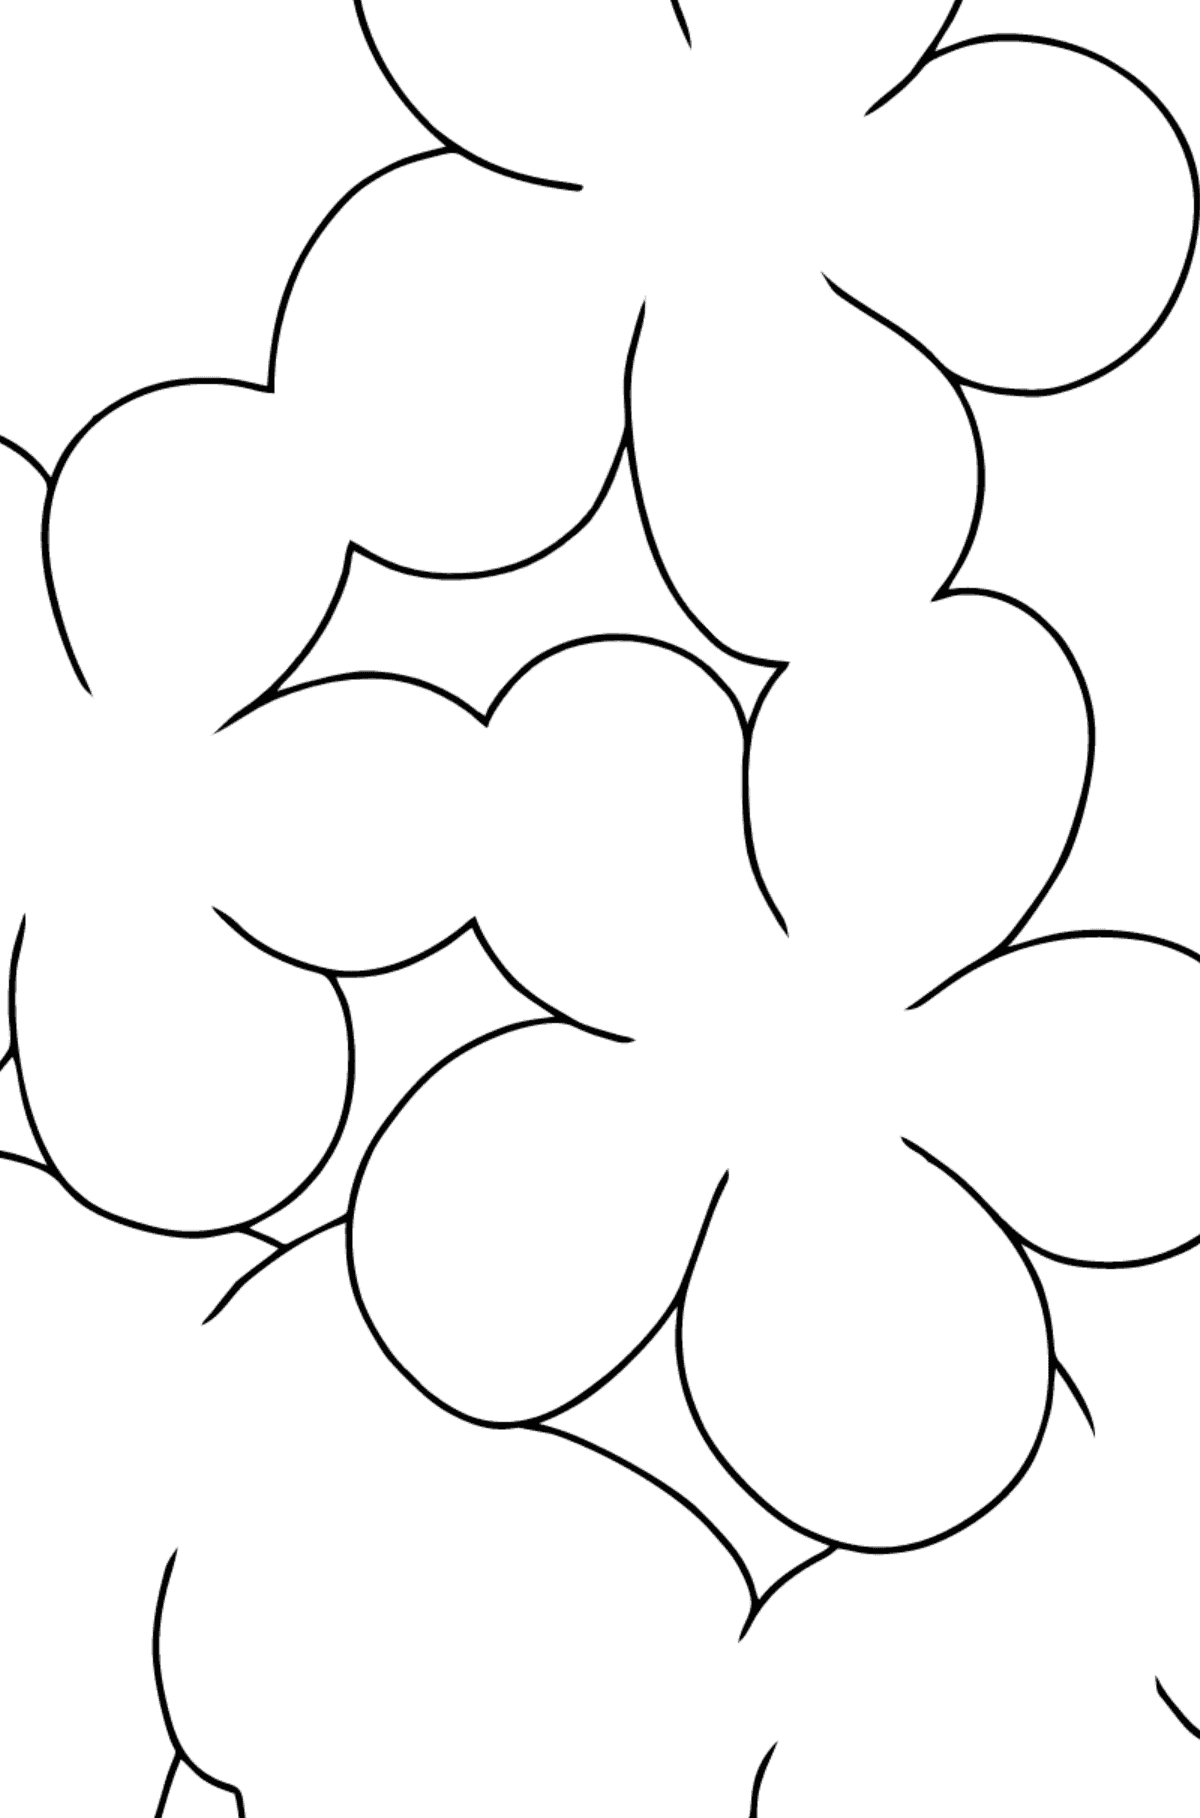 Coloring Page - Spring and First Flowers - Math Coloring - Multiplication for Kids